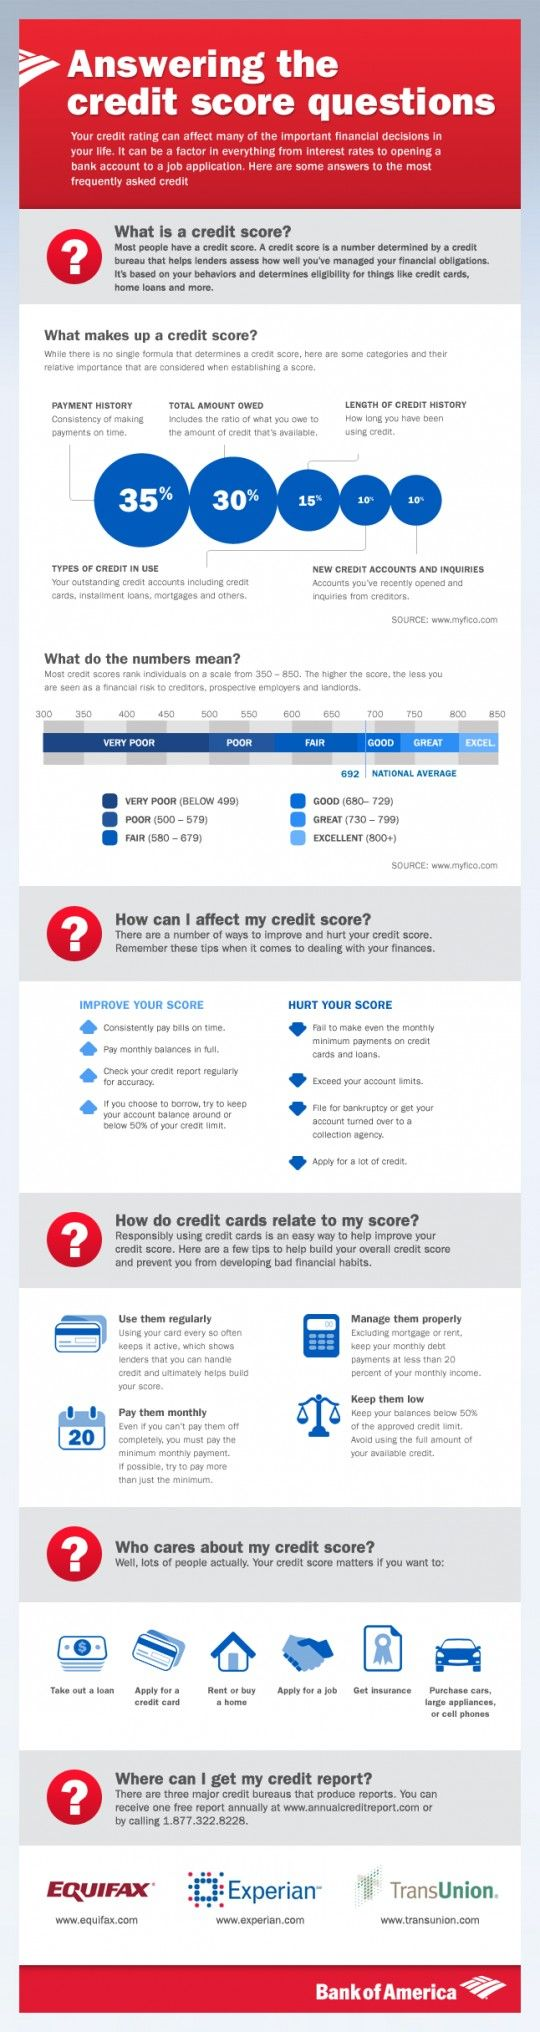 100% Financing Zero Down Payment Financing Kentucky Mortgages Home loans for Ky First time buyers: Credit Score Requirements for a Kentucky Mortgage ...